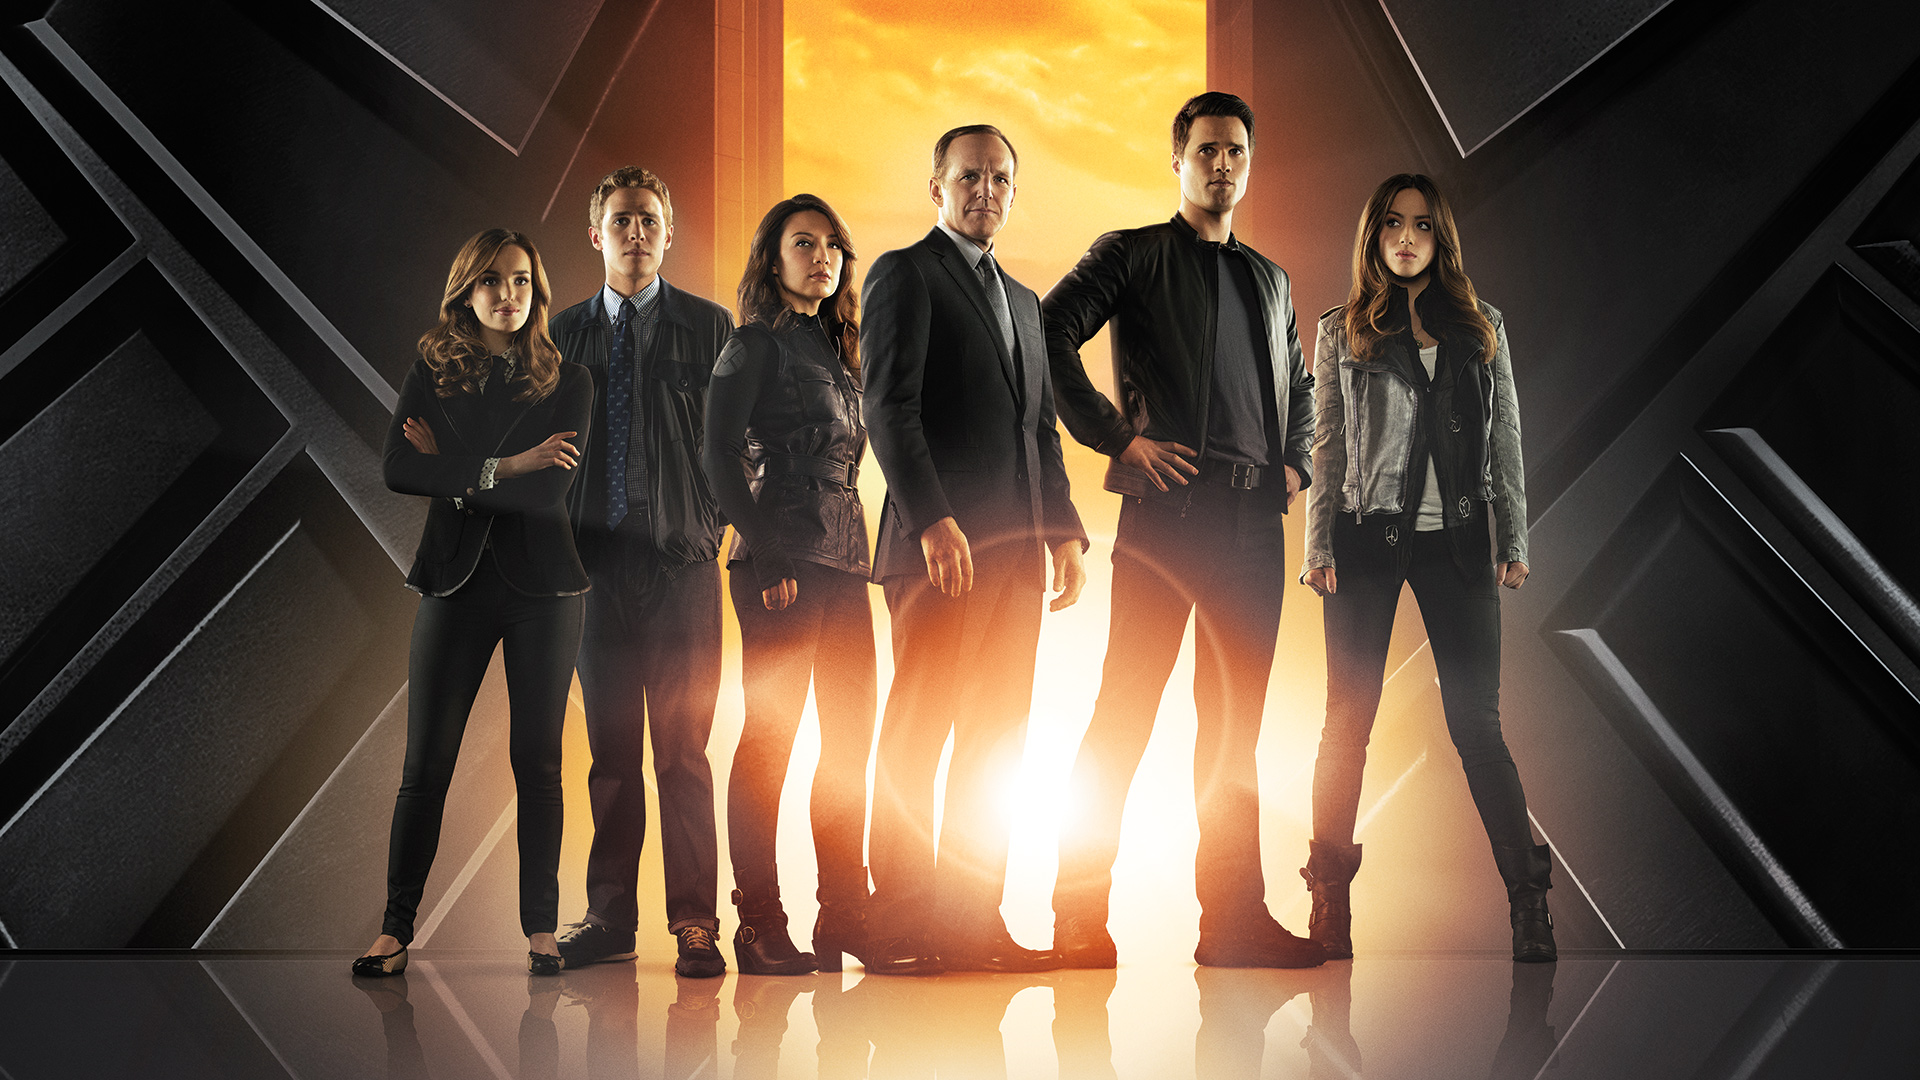 Marvel S Agents Of S H I E L D Wallpapers Tv Show Hq Marvel S